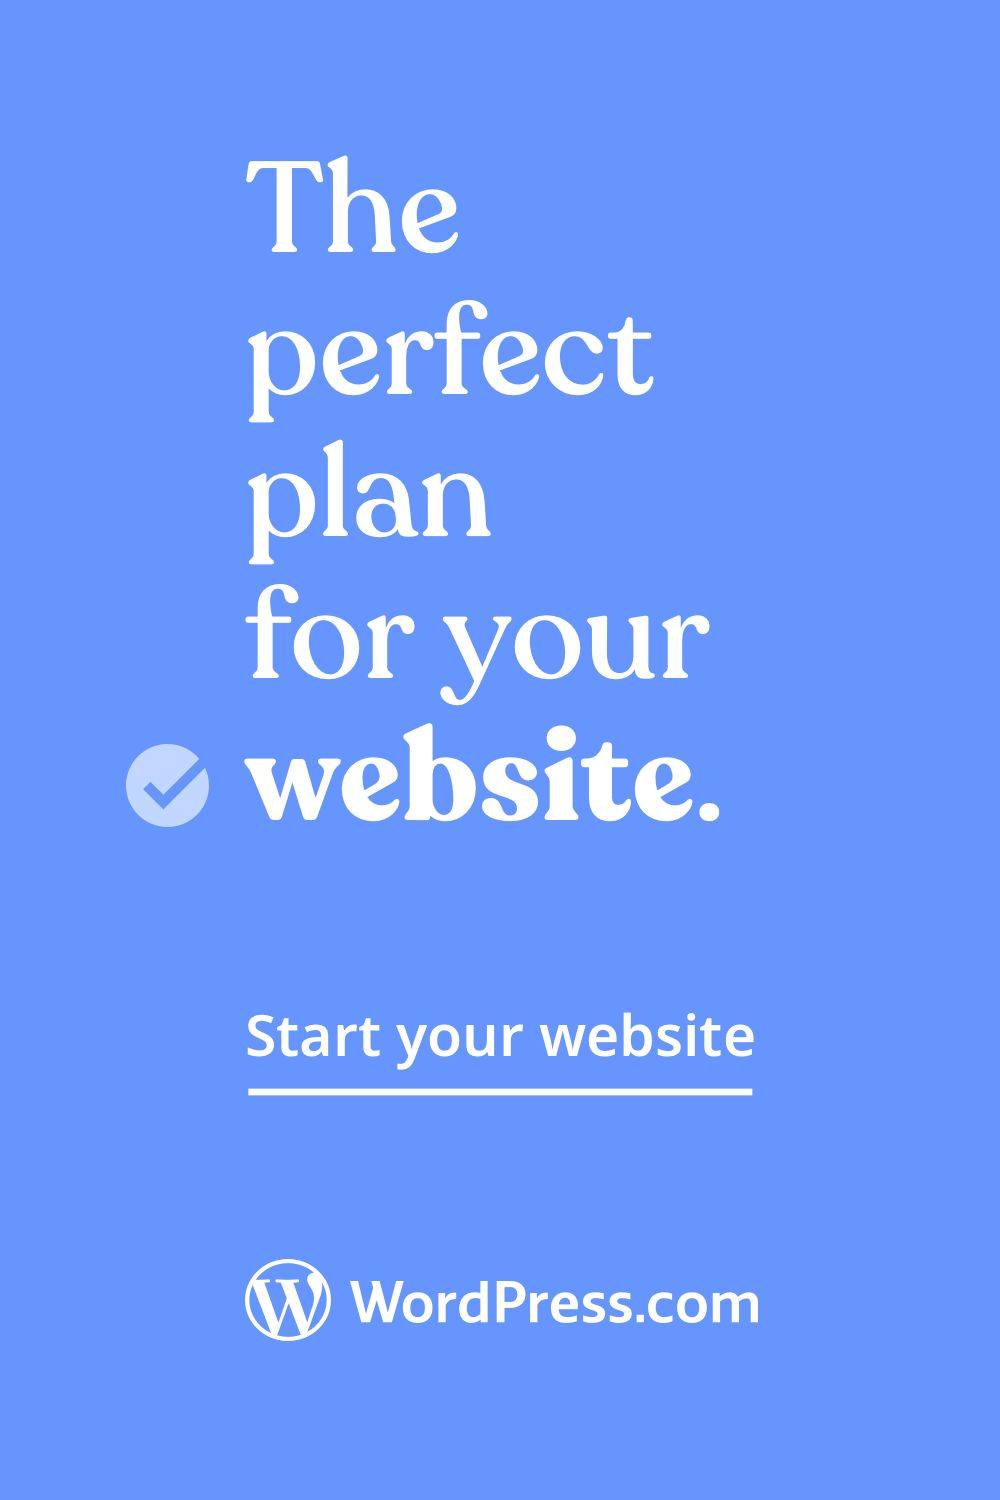 Create a website in minutes.